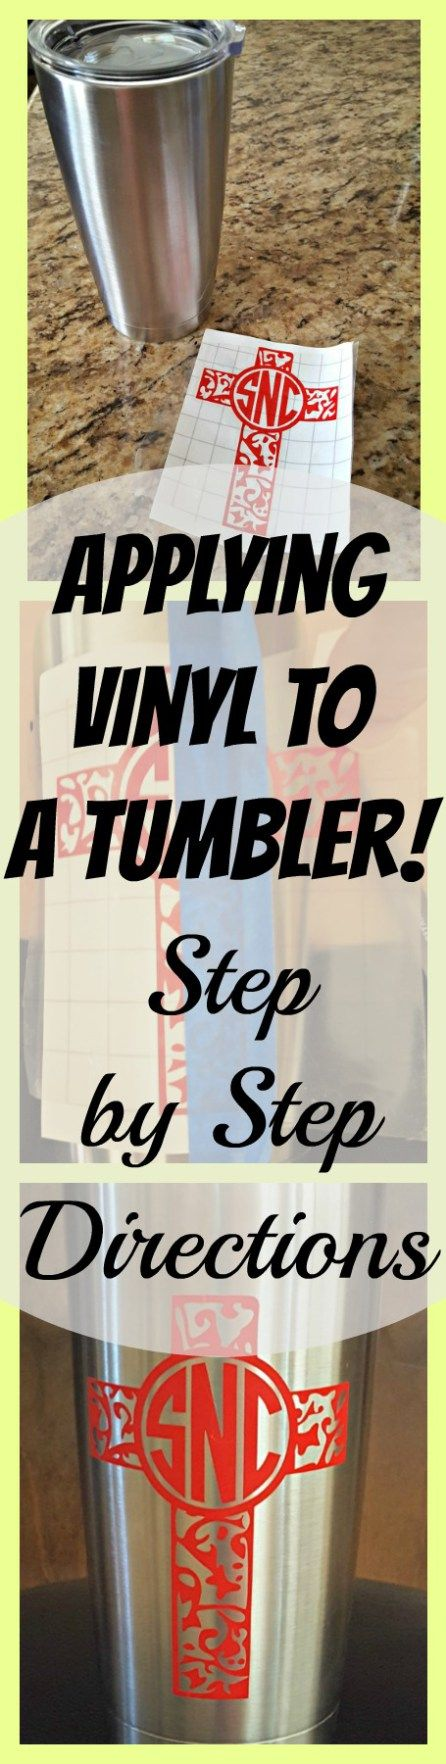 Applying Vinyl To A Tumbler Tumbler Cricut And Easy - How to make vinyl decals using cricut